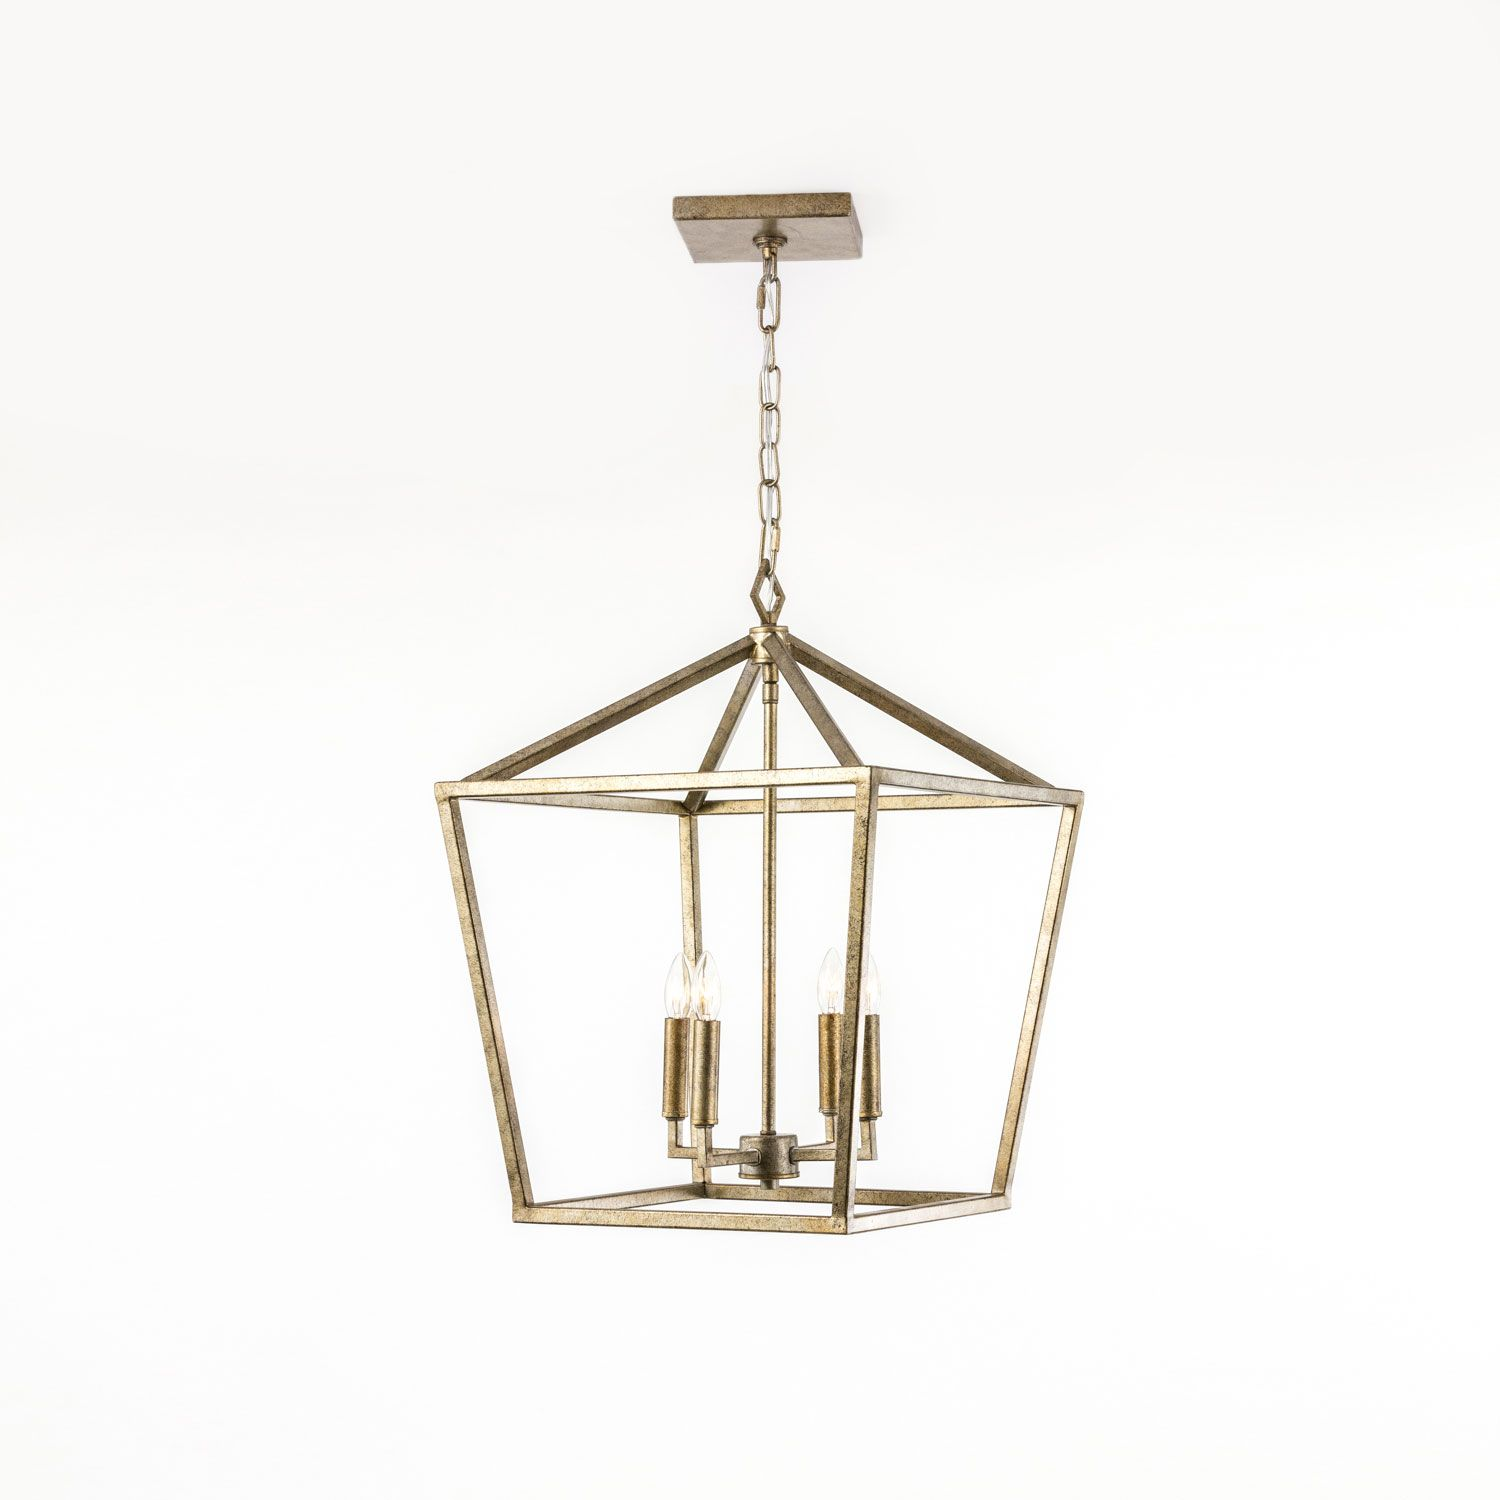 p klint lantern en lamp le c large the modern and cache pendant